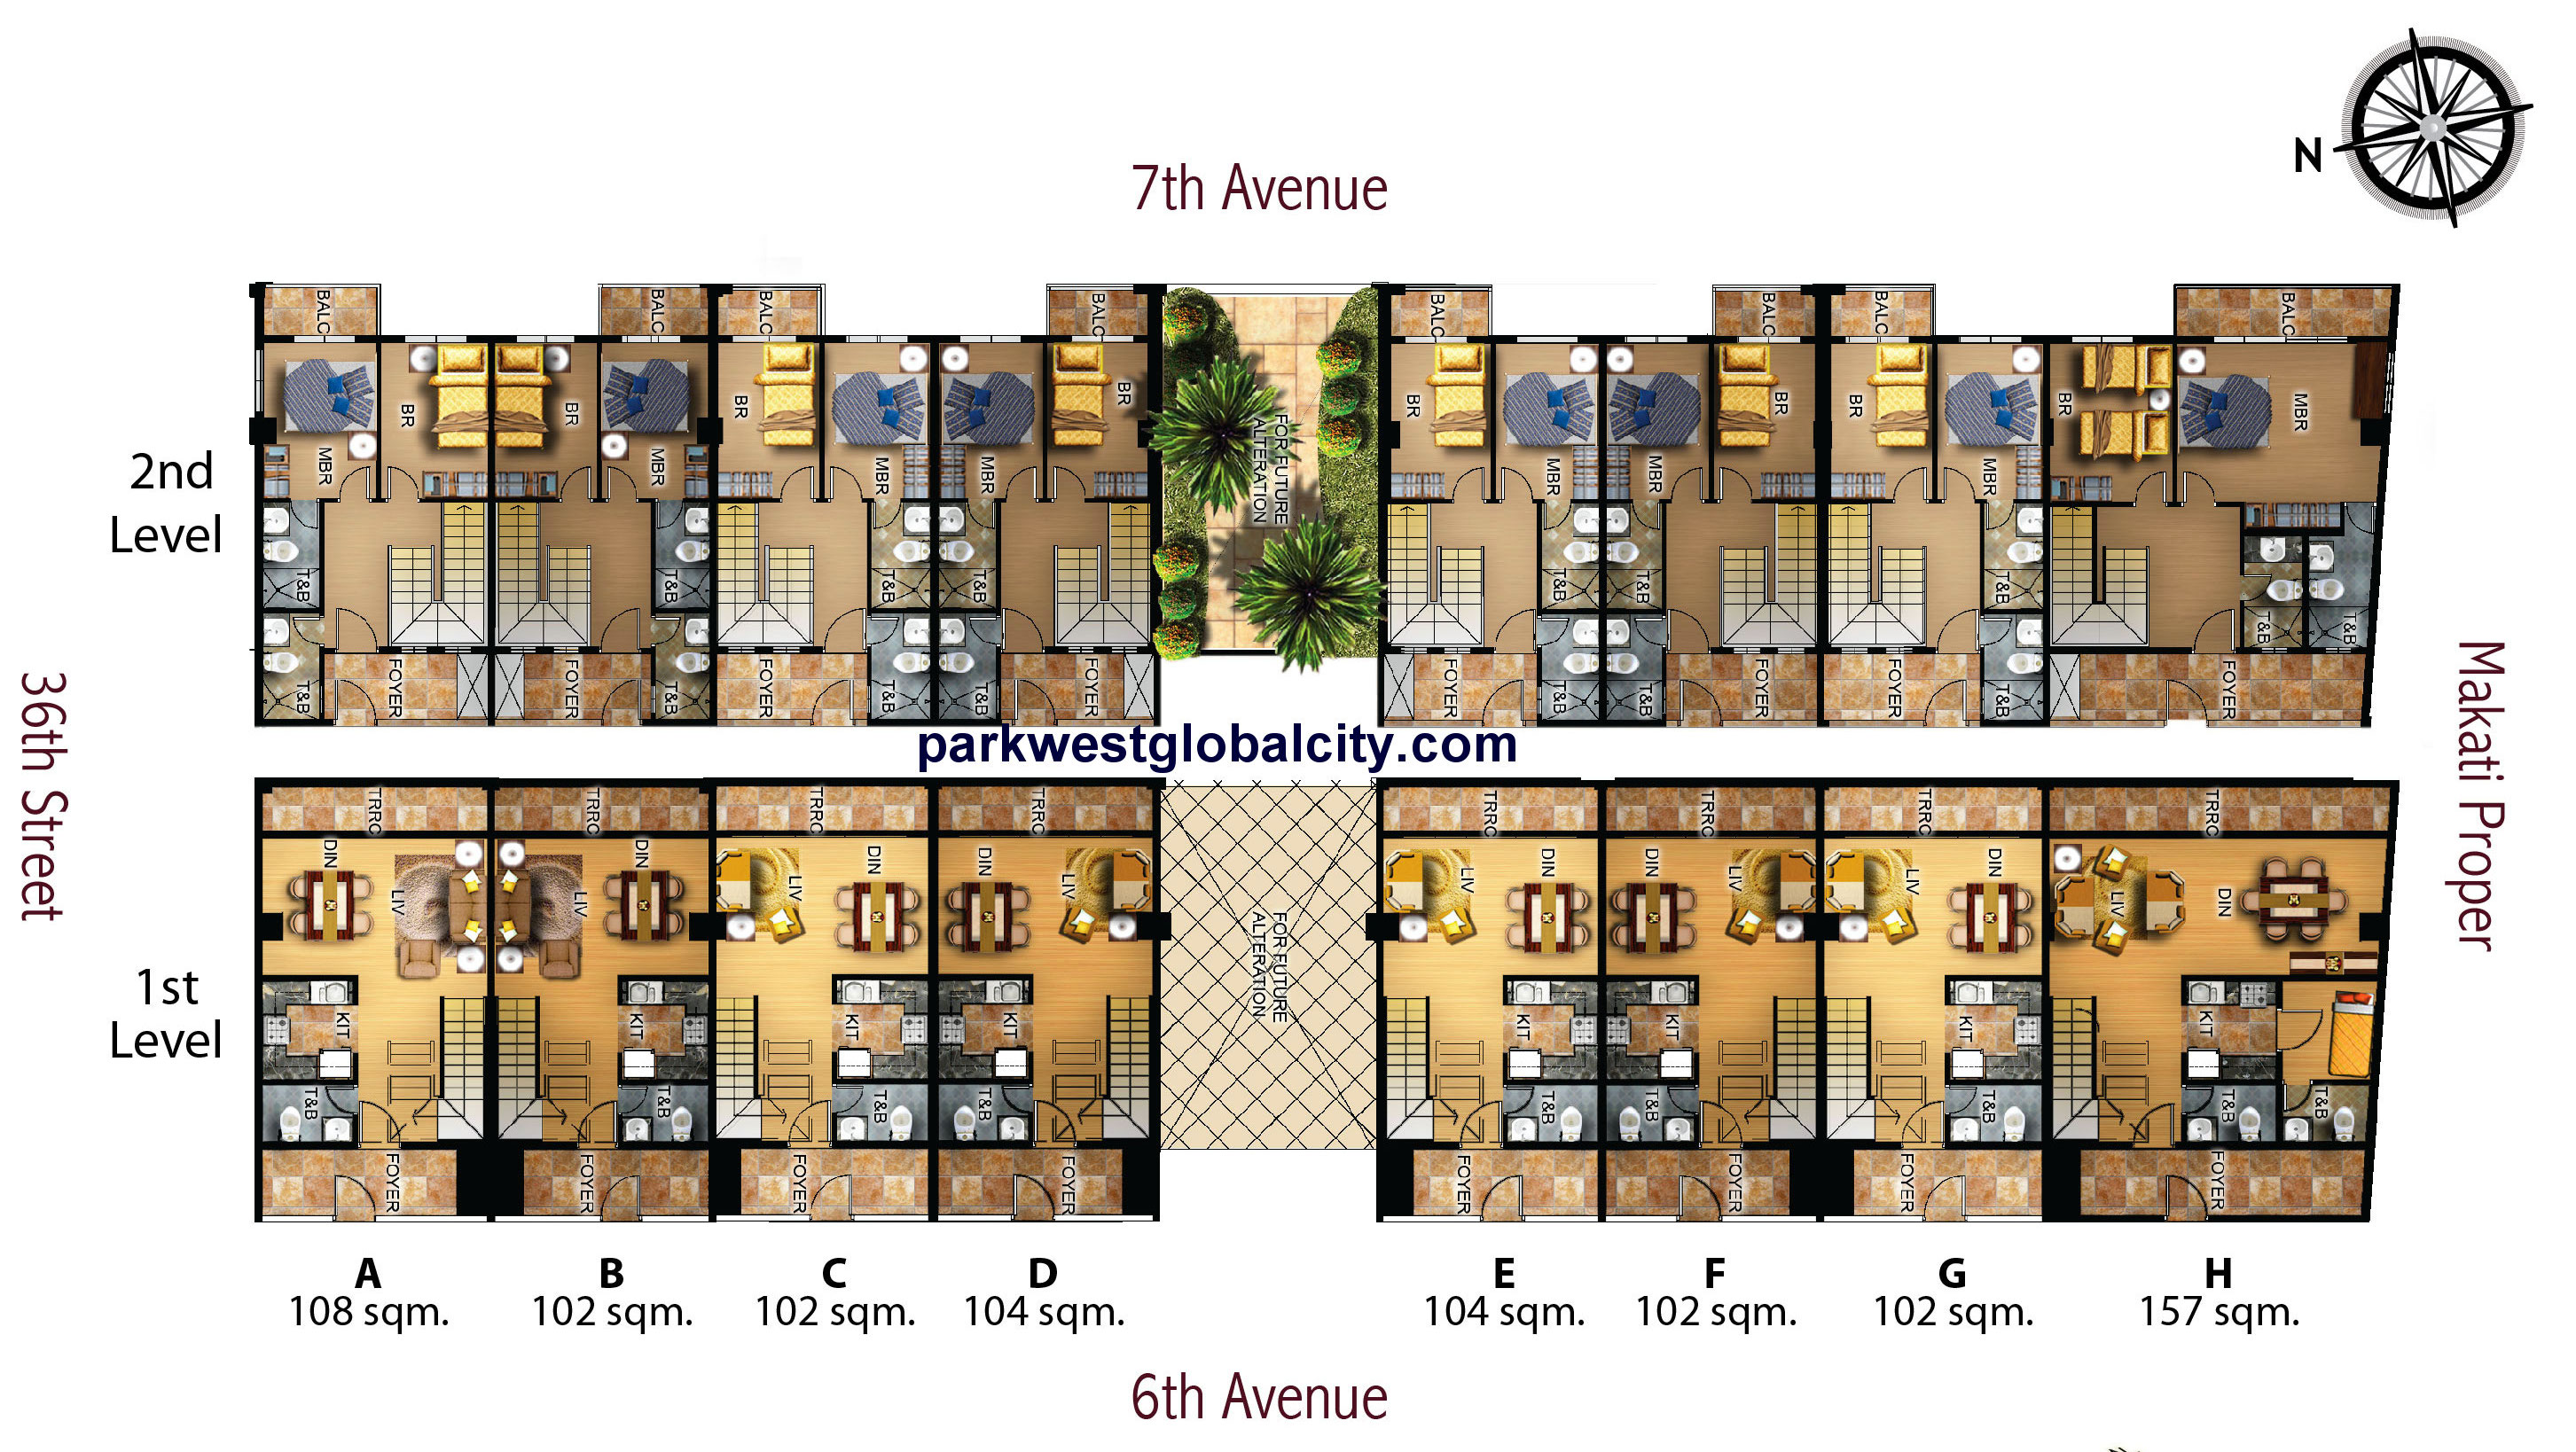 Park west global city executive villas floor plan